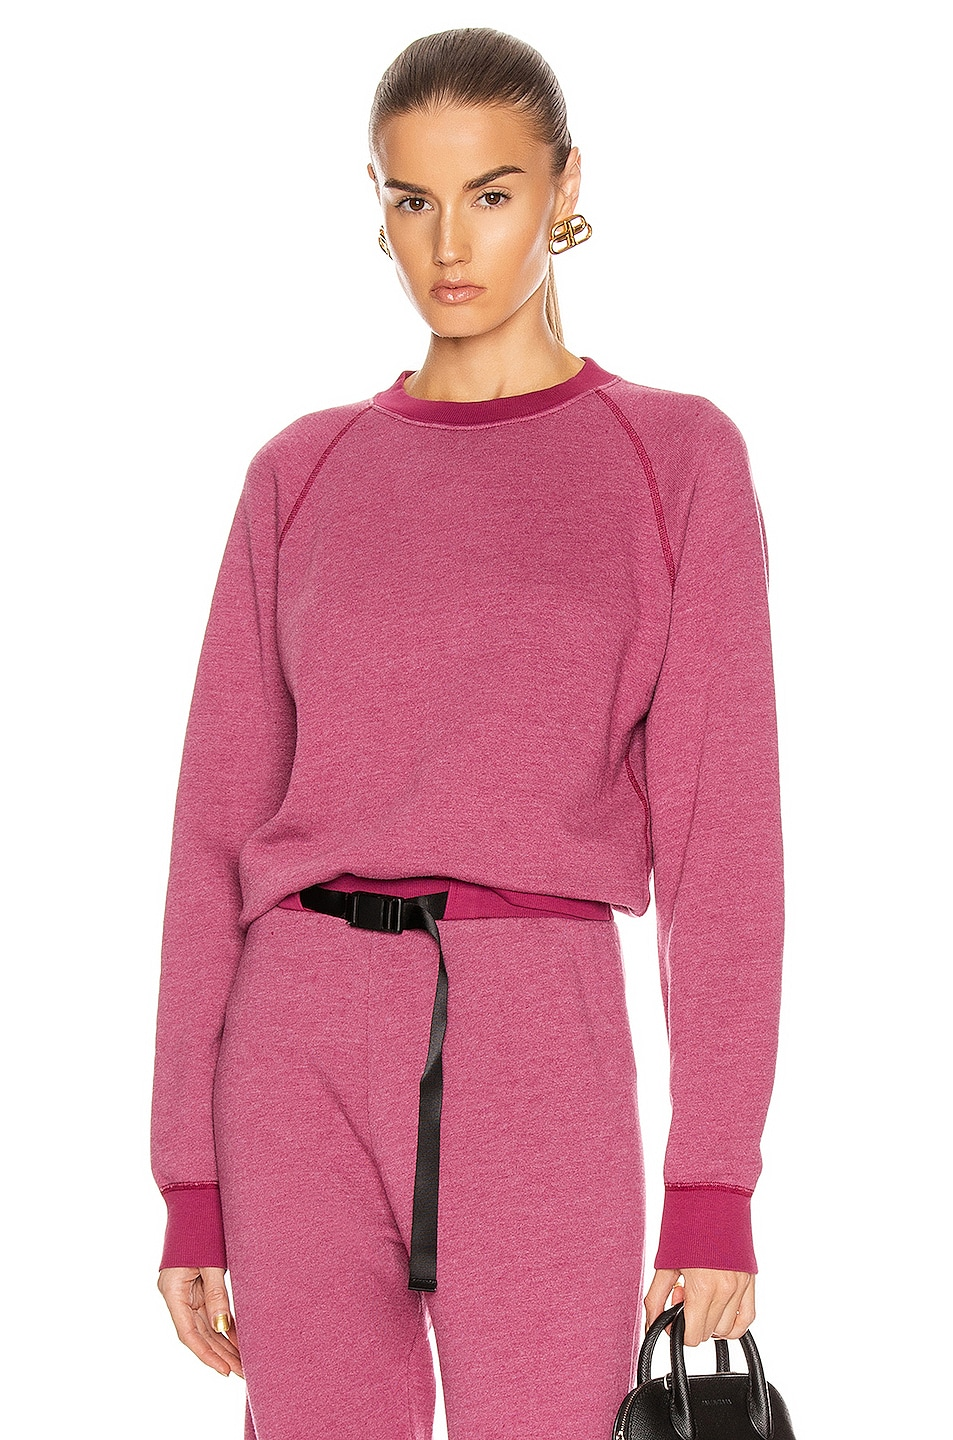 Image 1 of JOHN ELLIOTT Vintage Fleece Crew Sweatshirt in Lambrusco